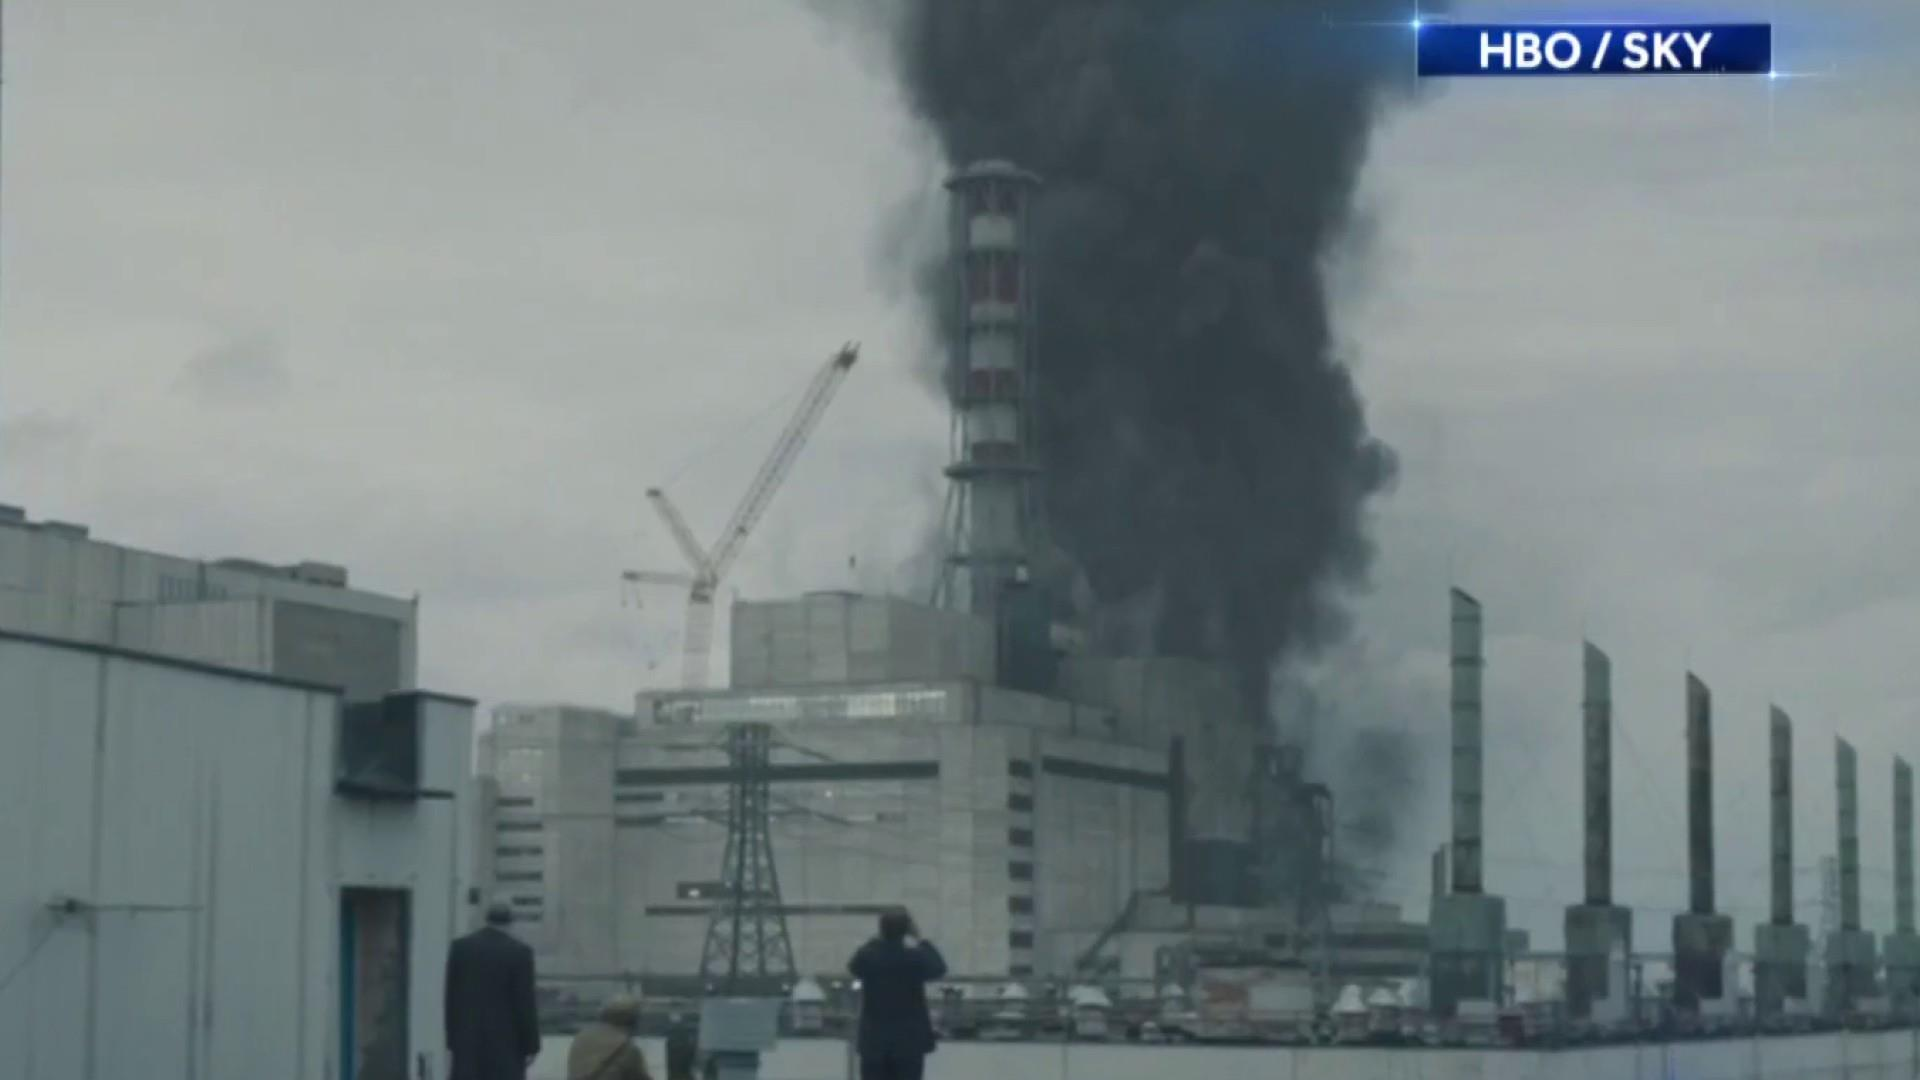 HBO miniseries success drives Chernobyl tourism boom